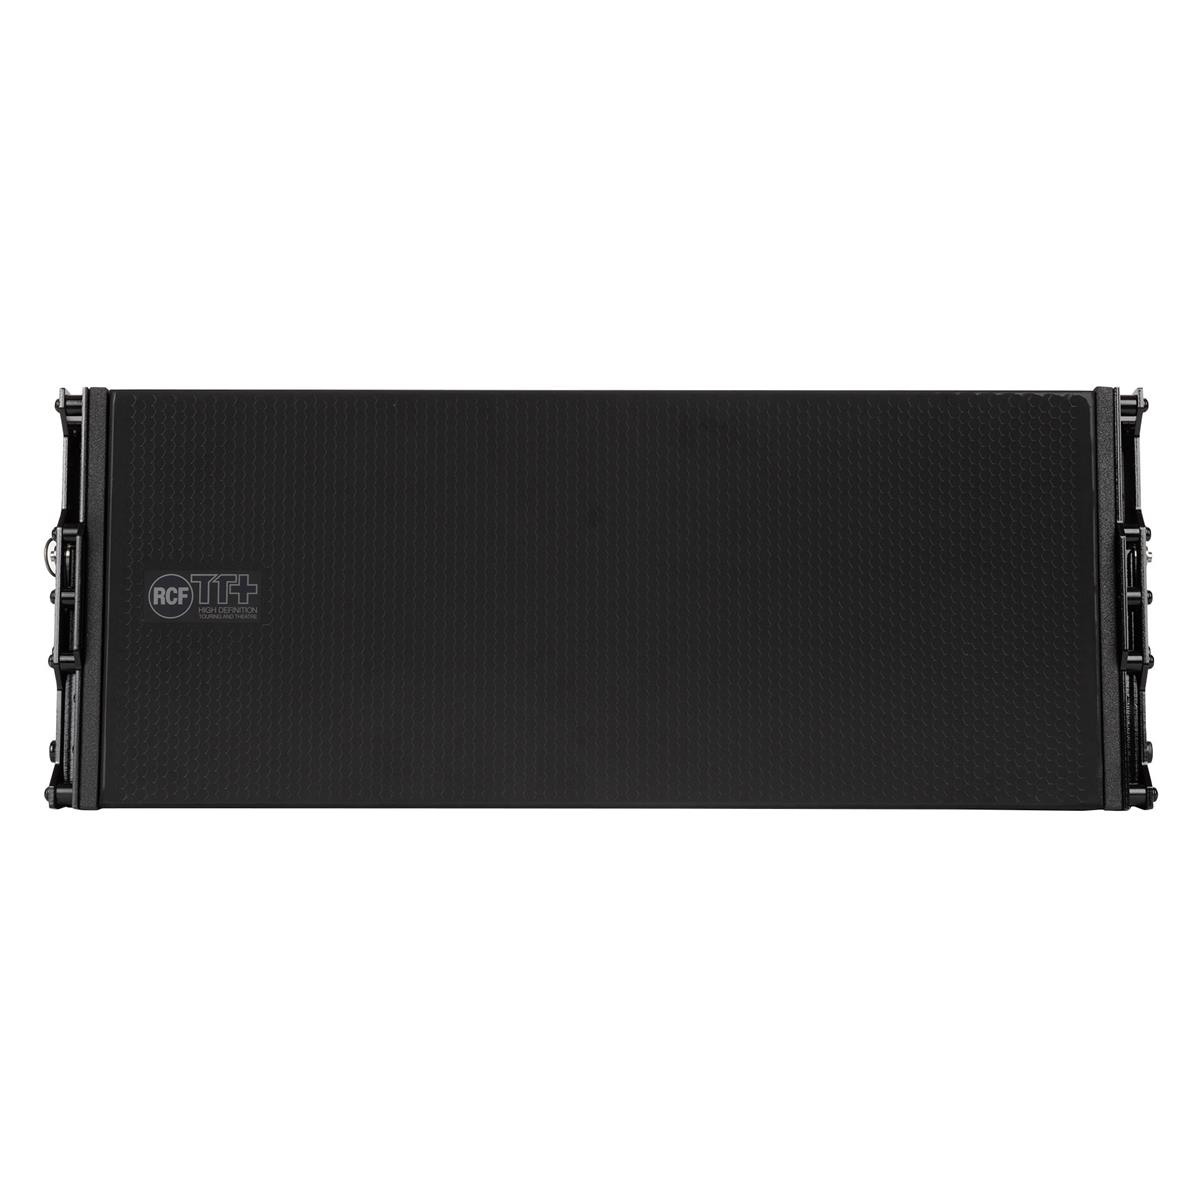 RCF Weather-proof 3-way line array 2x8in+8in+ 3x1in, biamp i